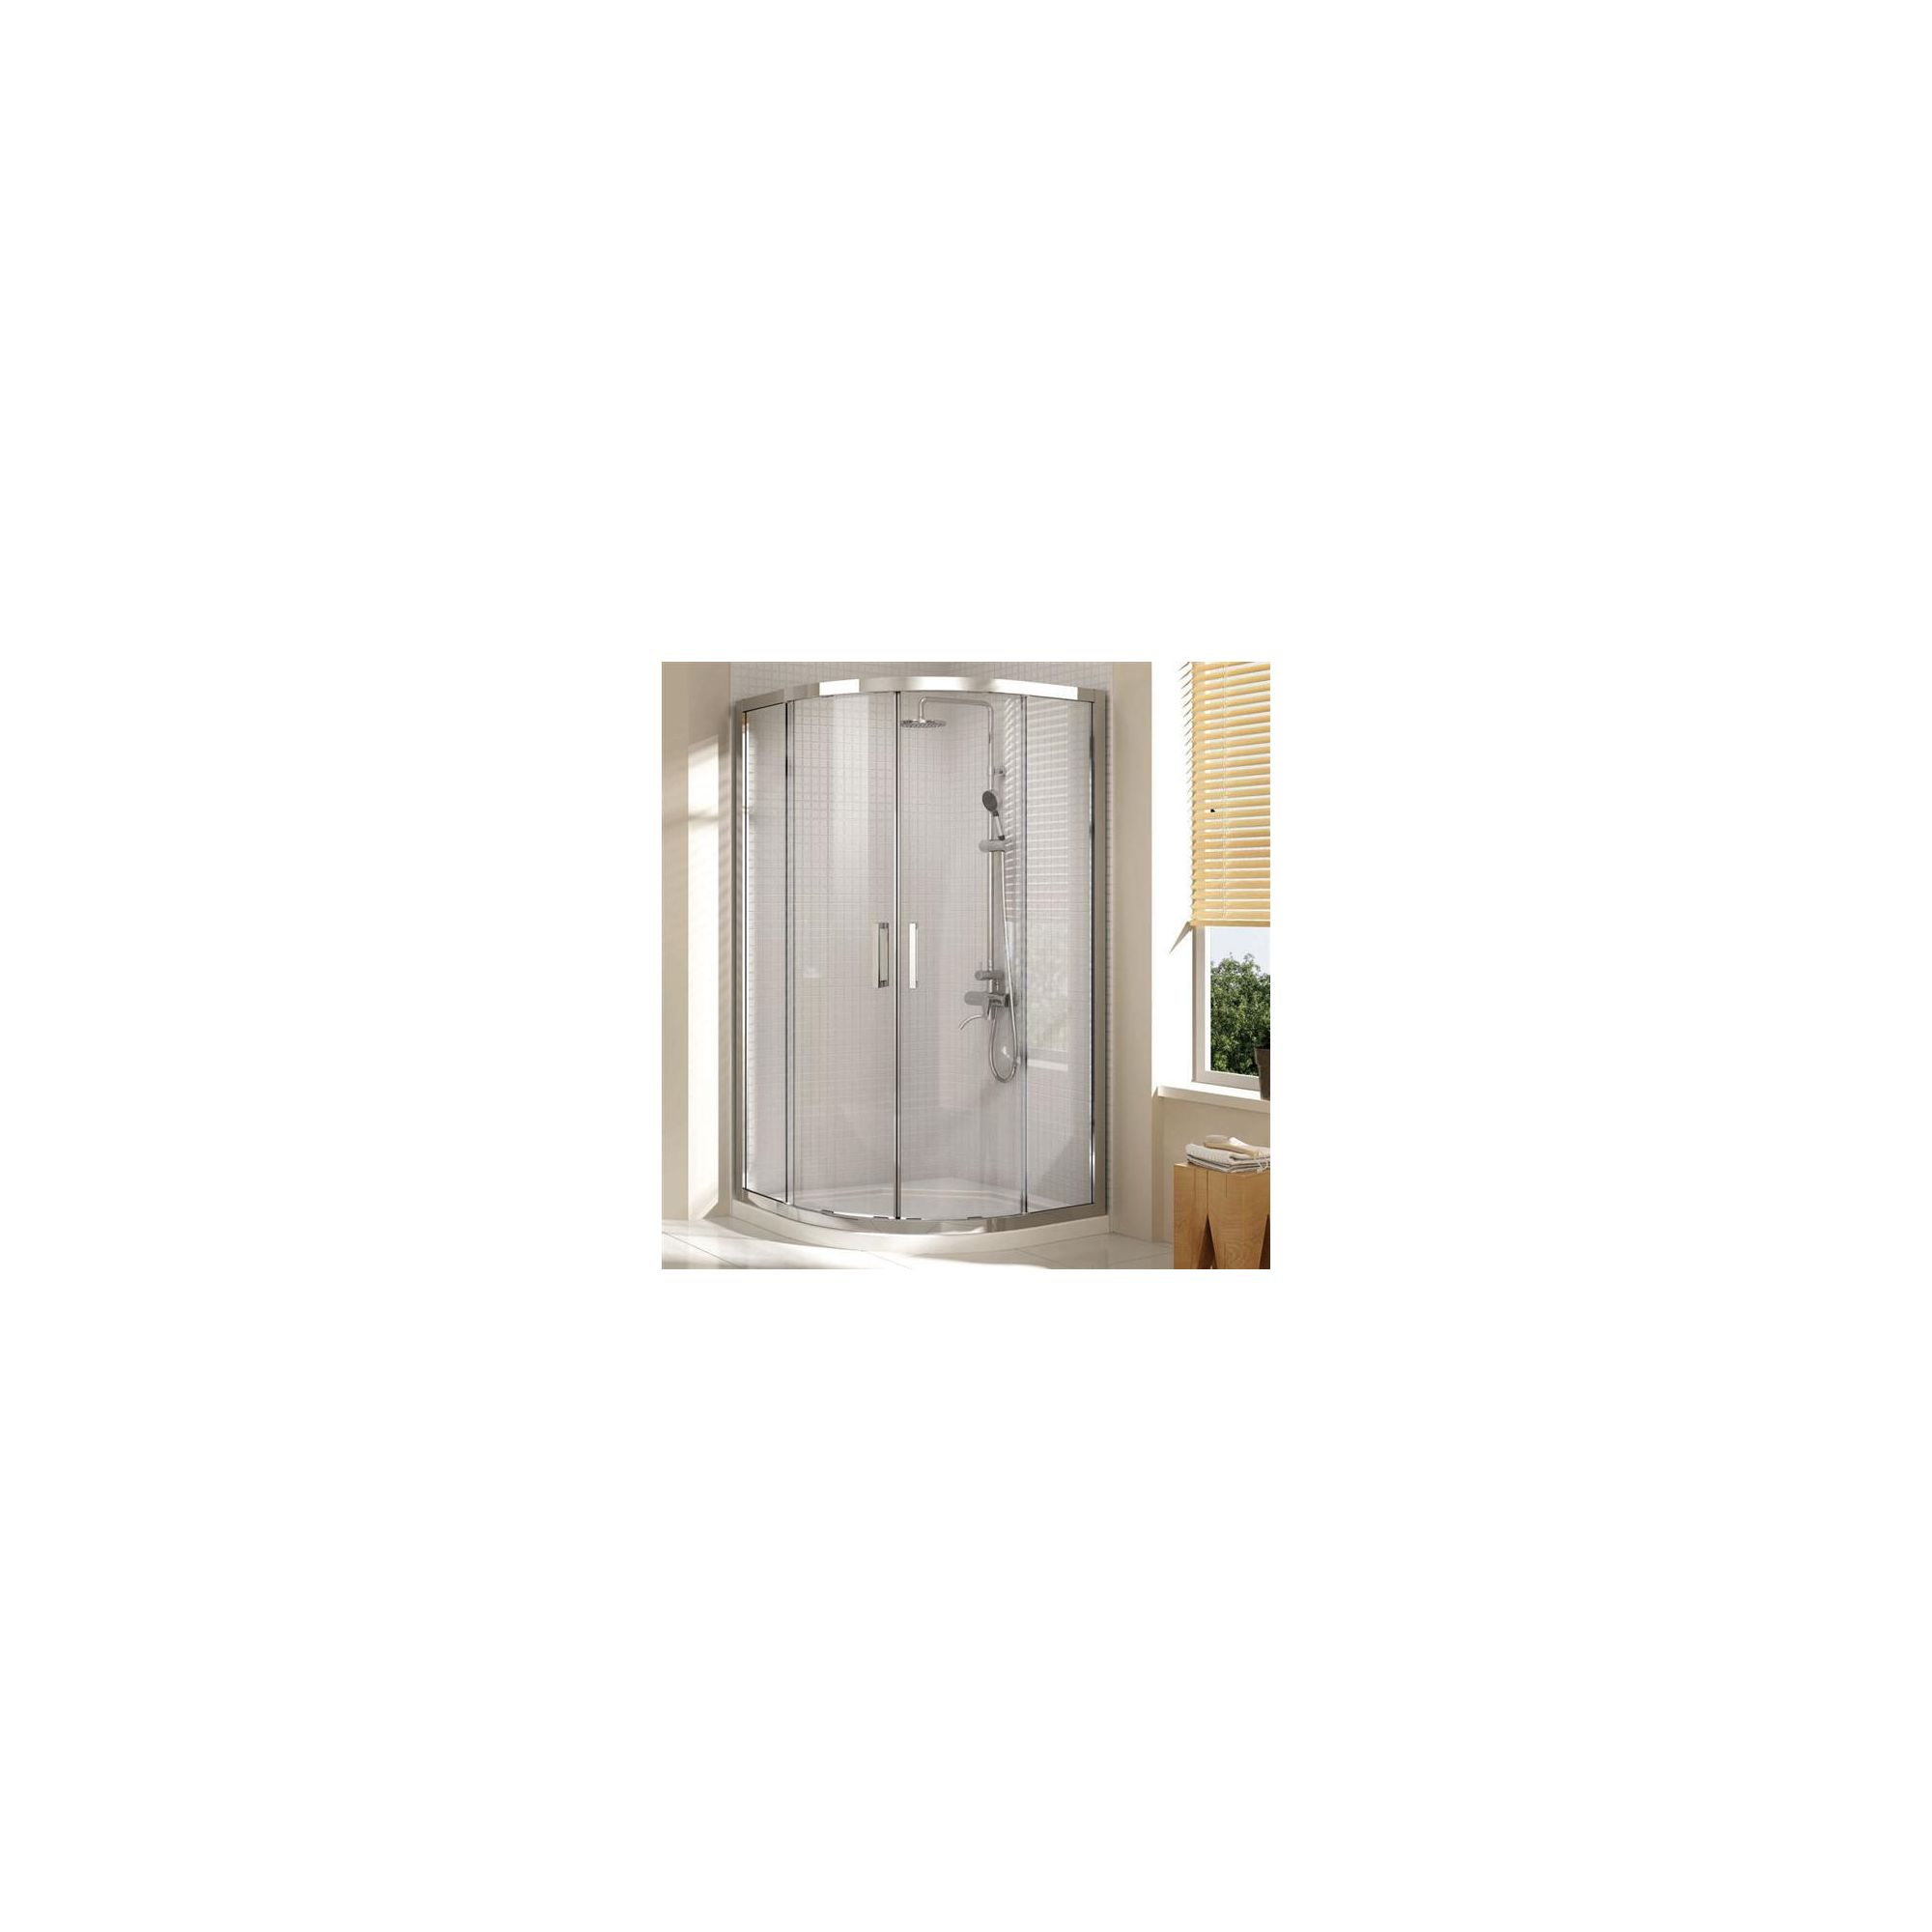 Merlyn Vivid Eight Quadrant Shower Door, 1000mm x 1000mm, 8mm Glass at Tesco Direct